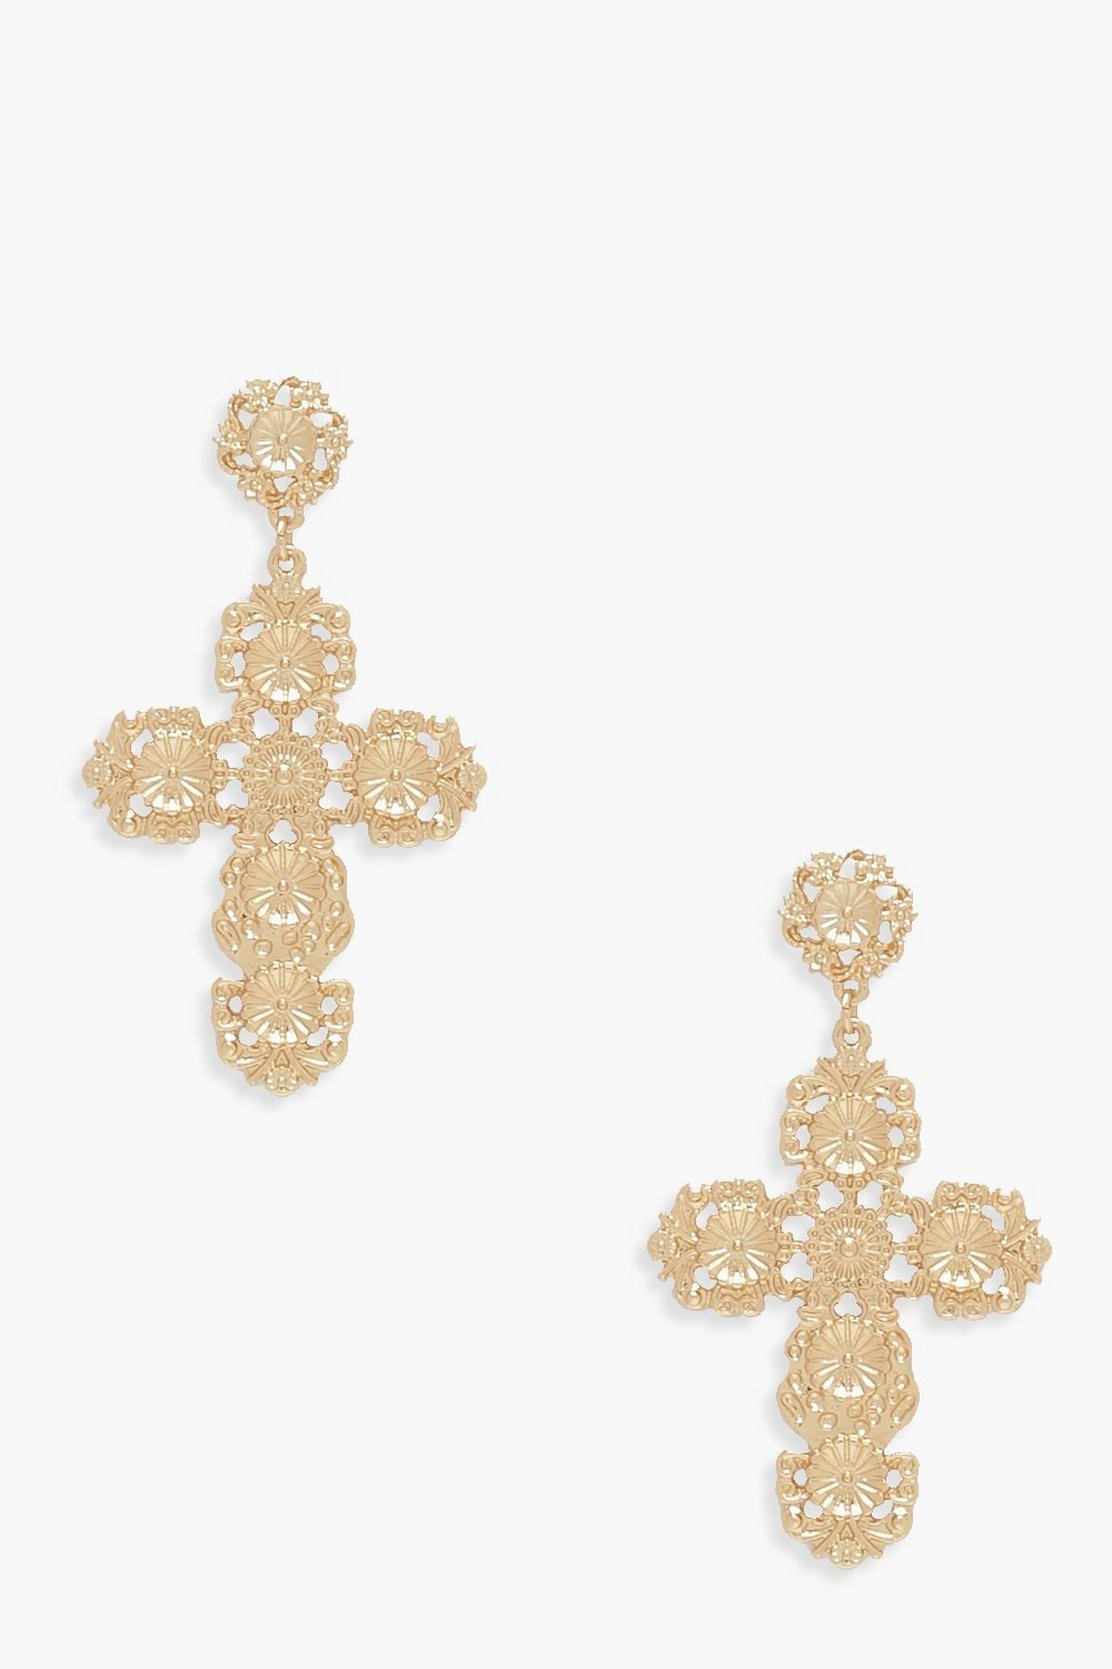 Ornate Cross Statement Earrings by Boohoo